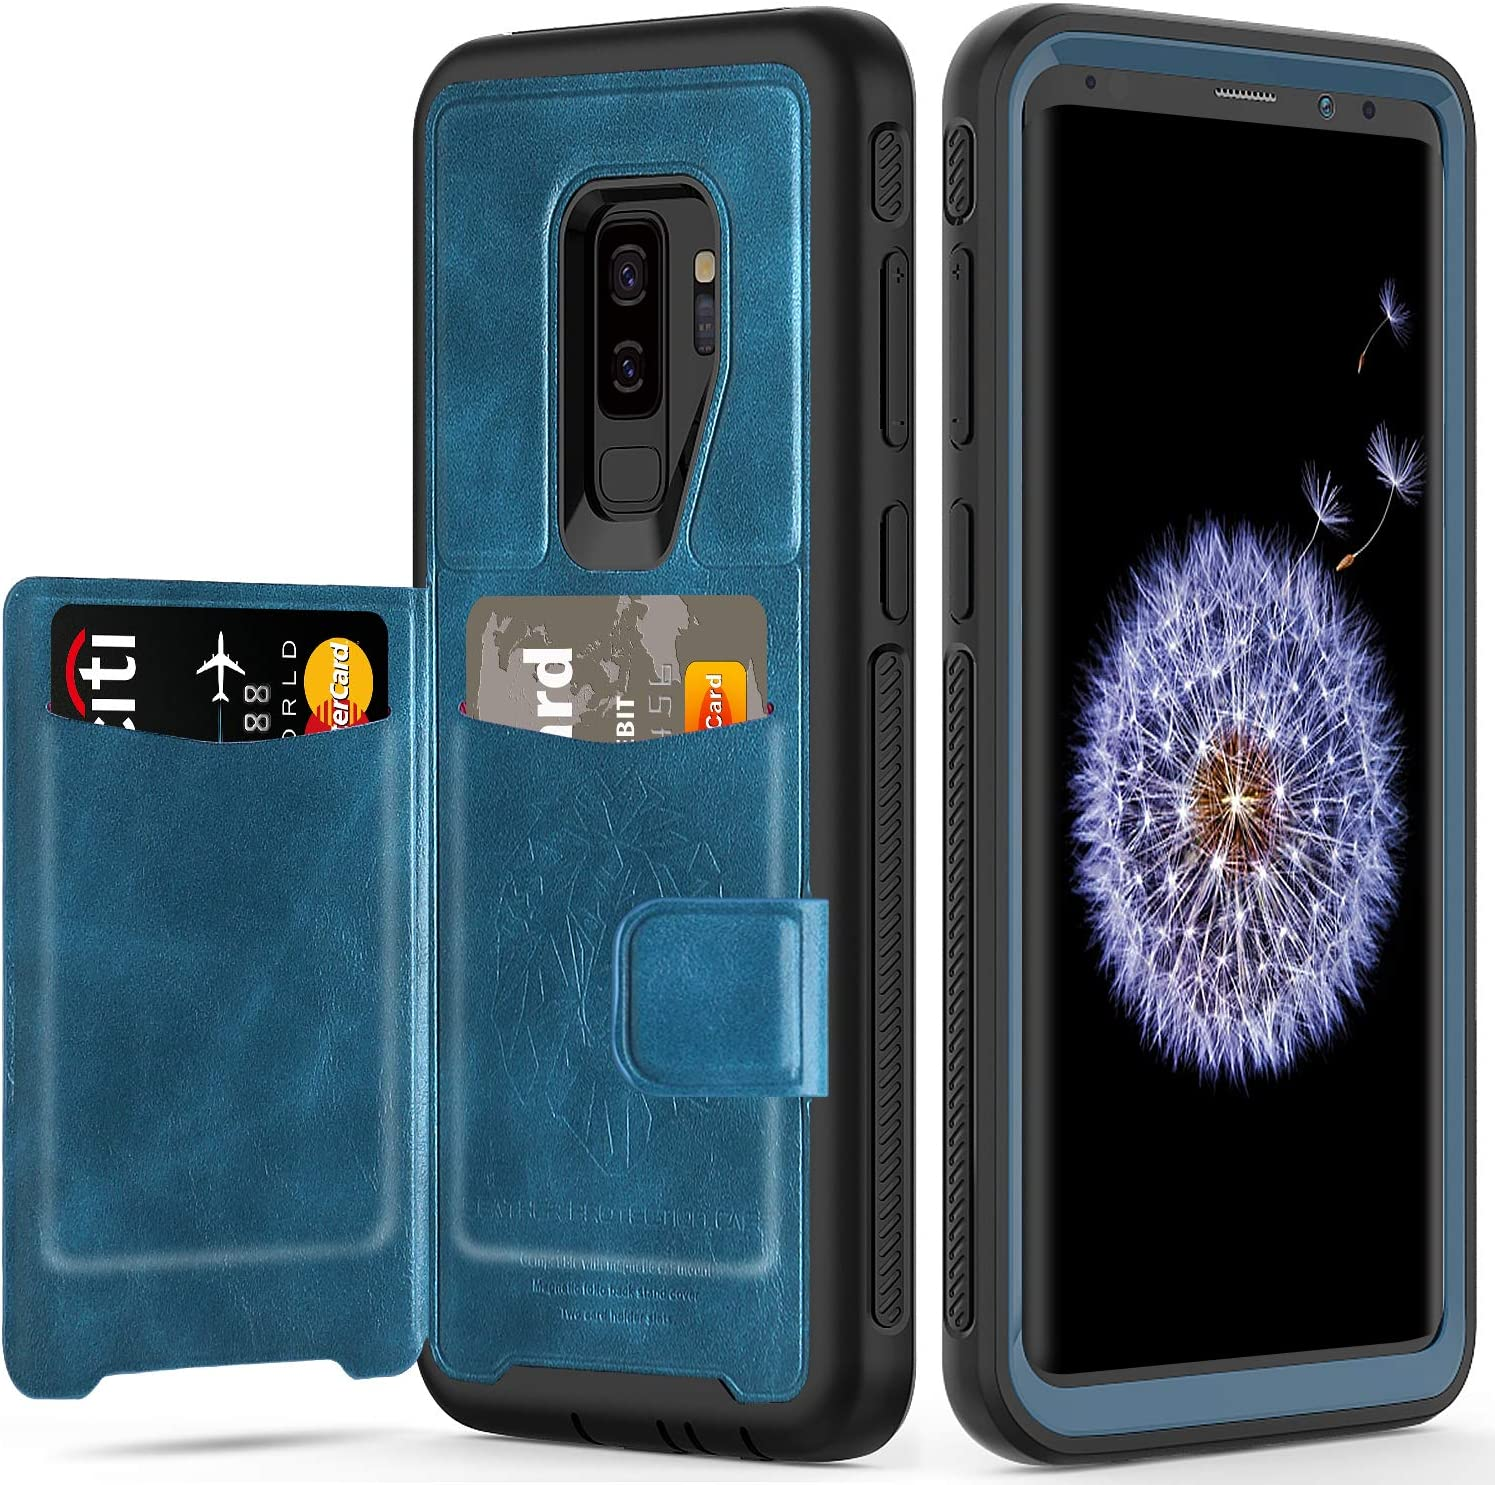 Plus Wallet Case,Luxury Henna Mandala Floral Flower PU Leather Flip Phone Protective Case Cover with Credit Card Slot Holder Kickstand for Samsung Galaxy S9 Plus,Purple Galaxy S9 Plus Case,S9